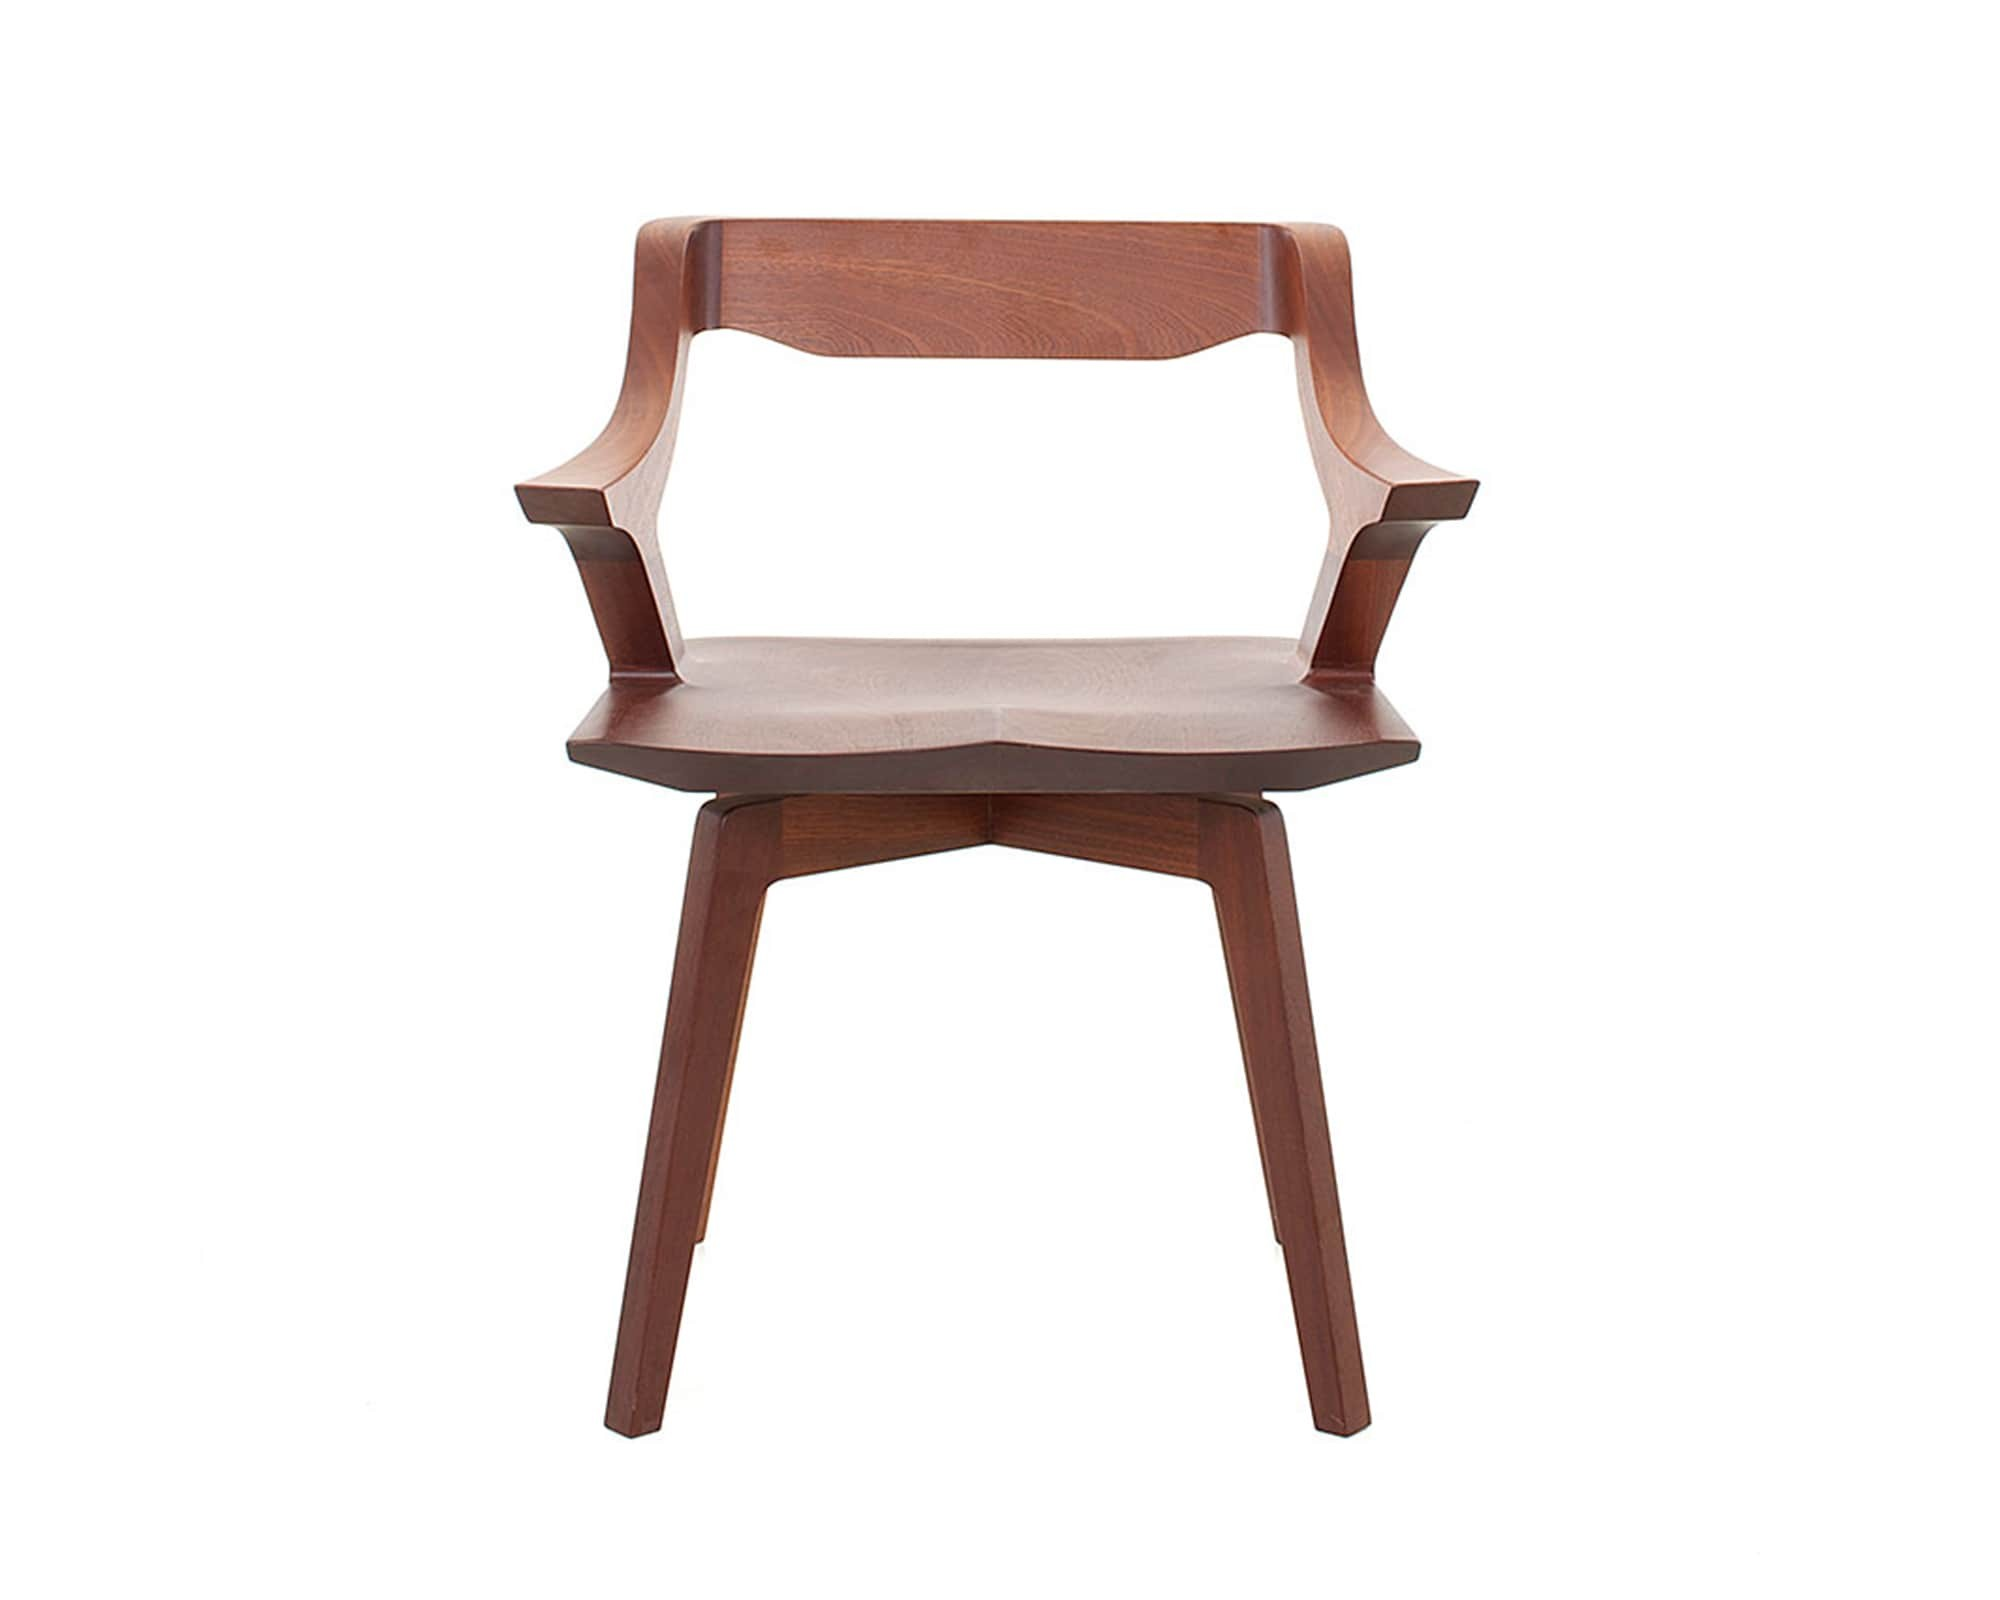 New Legacy Vito Chair Designer Chair Malaysia Linds